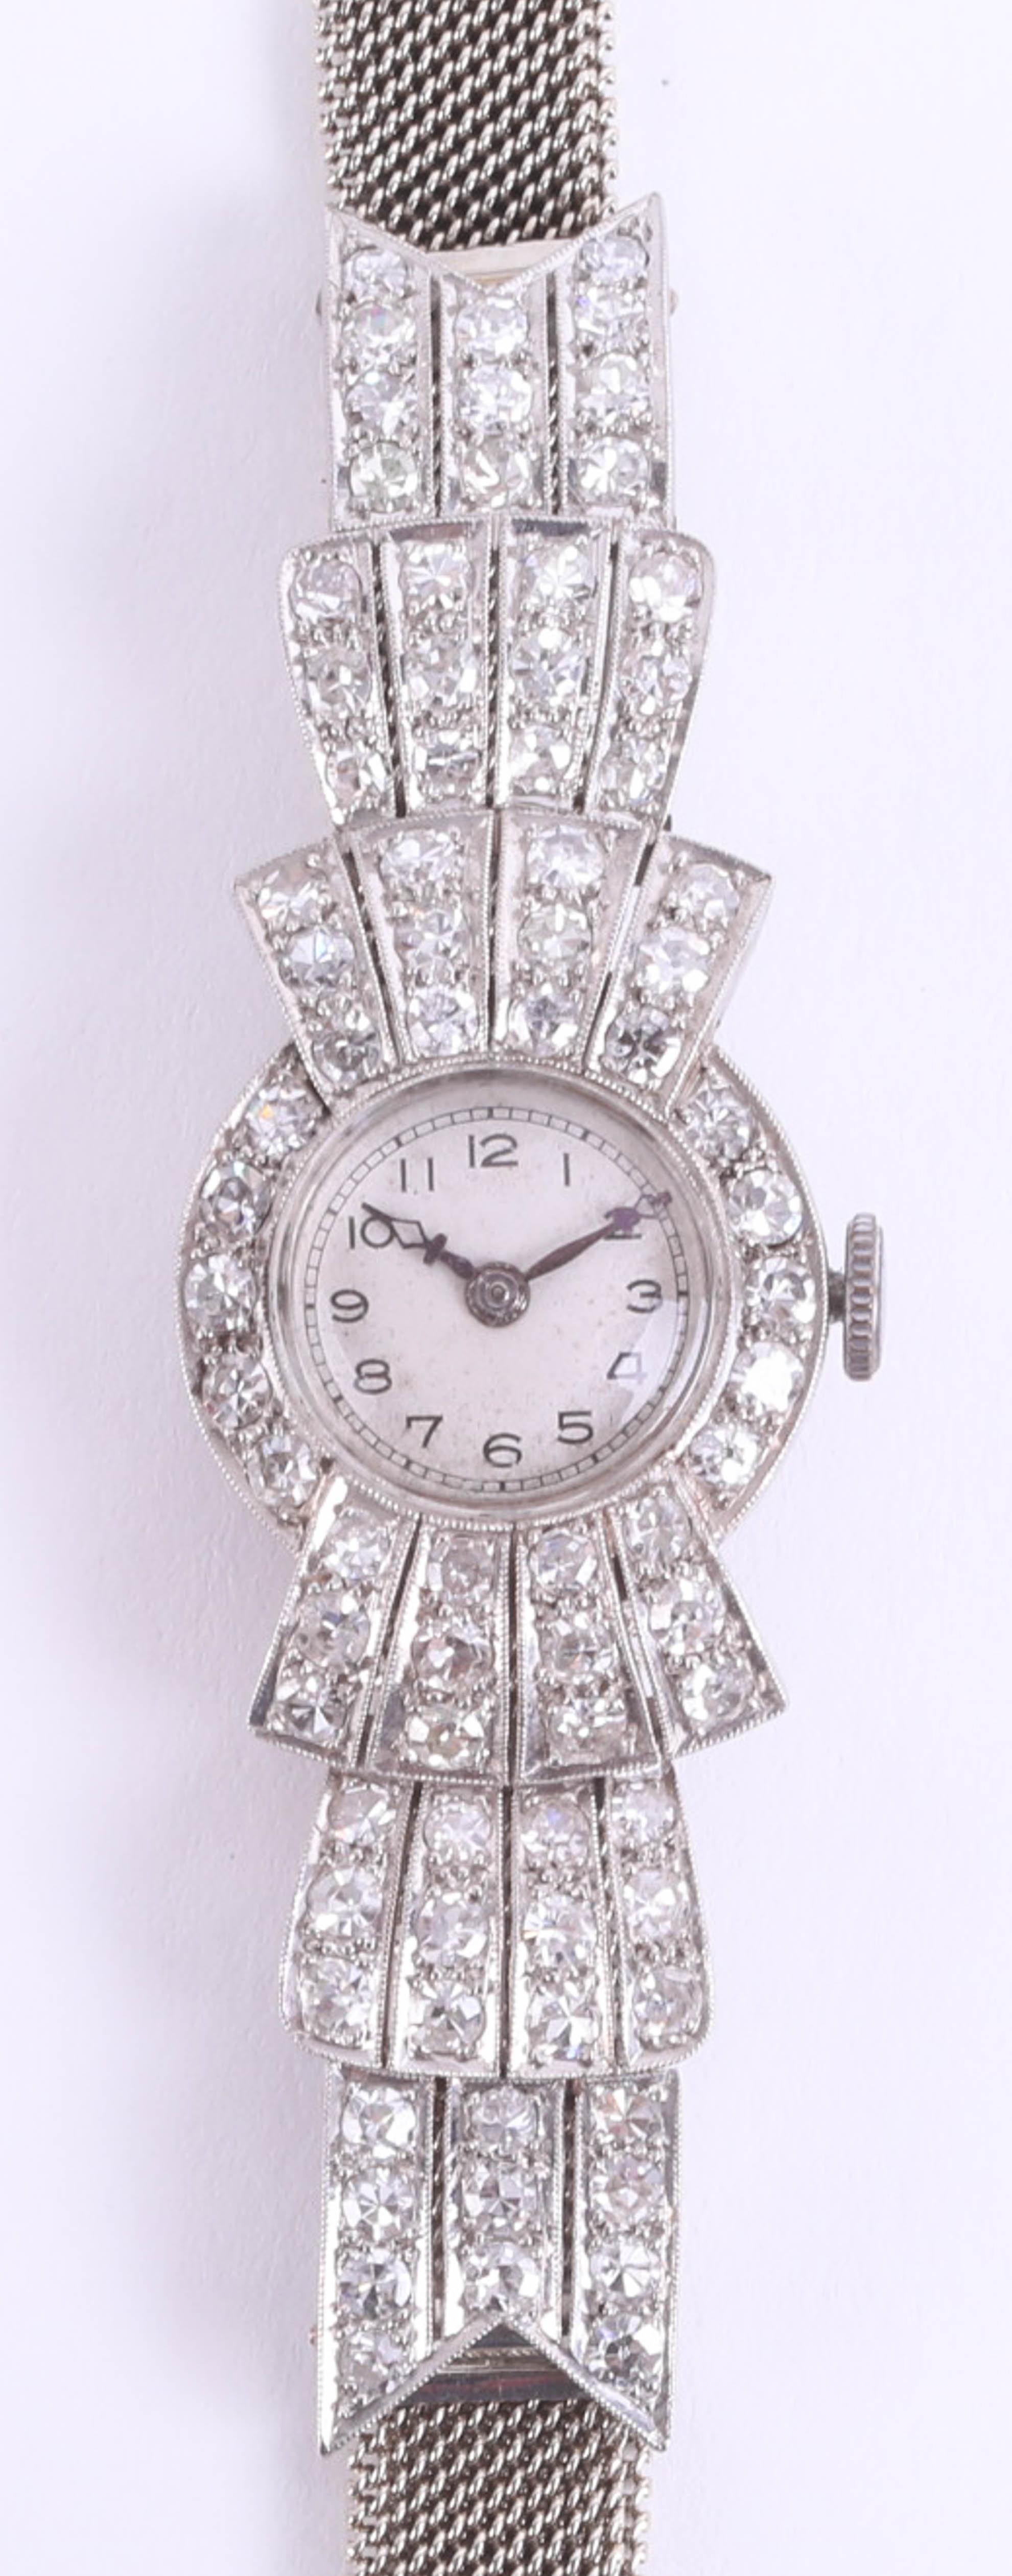 Lot 029 - An Art Deco diamond cocktail watch, the circular dial with Arabic numeral, in possibly its